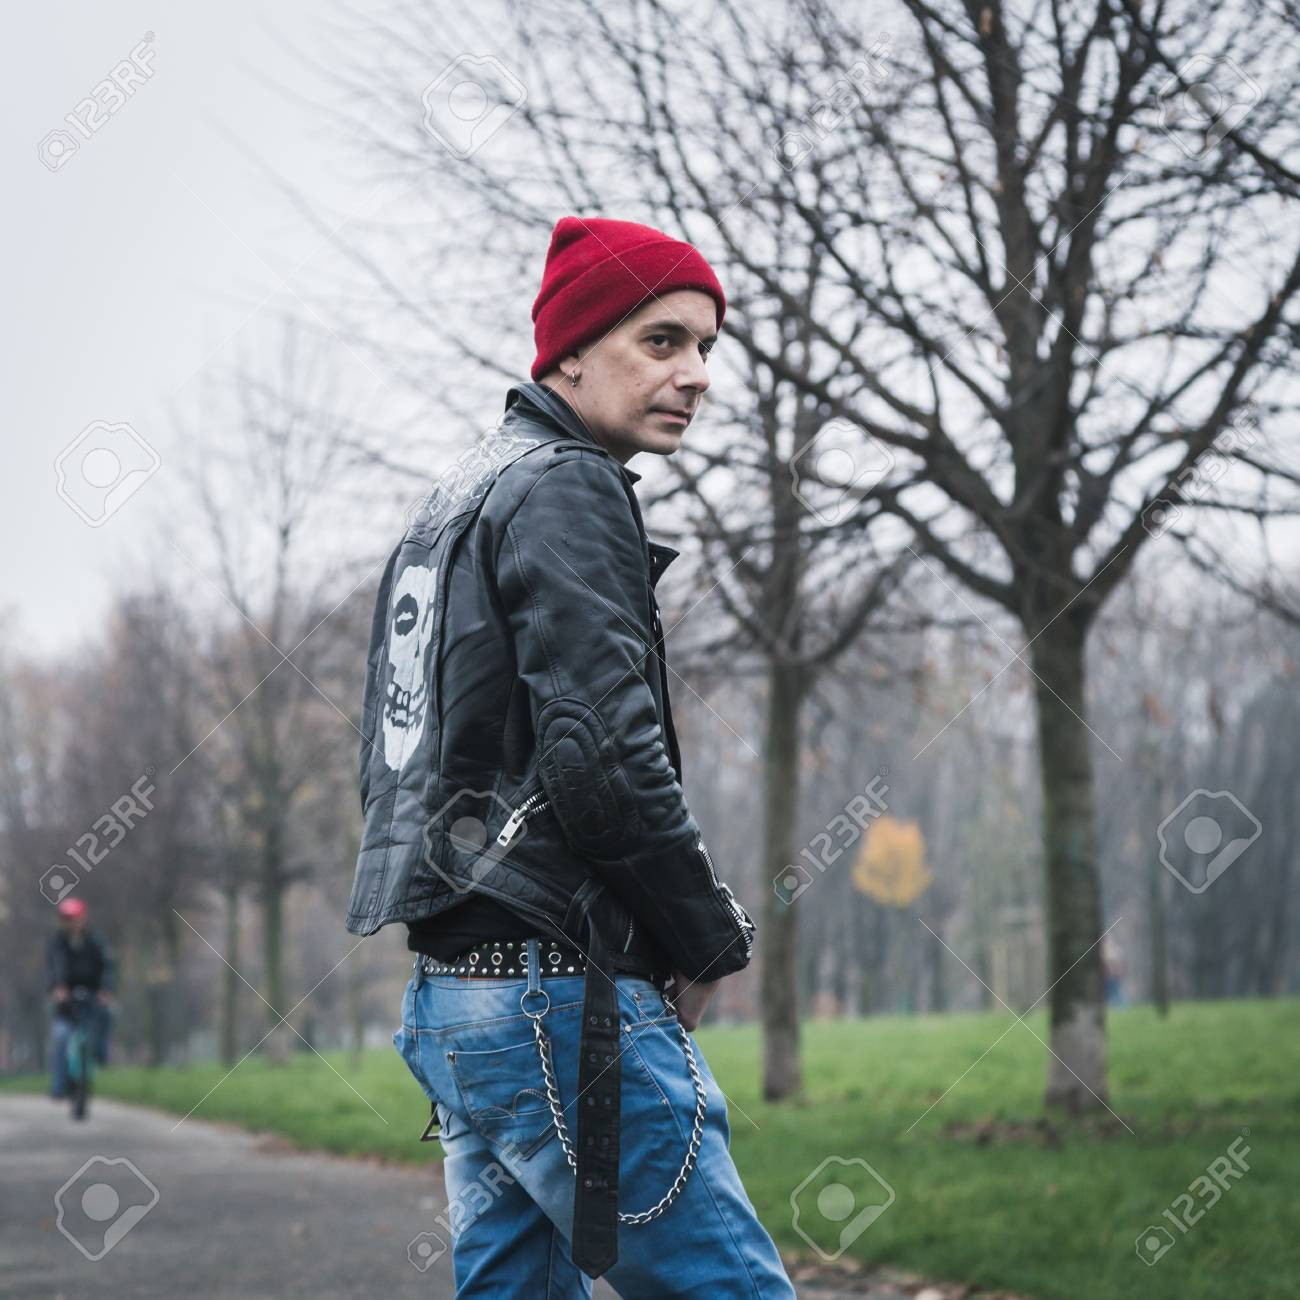 c0abe2e22b7 Punk guy with beanie posing in a city park Stock Photo - 36177668